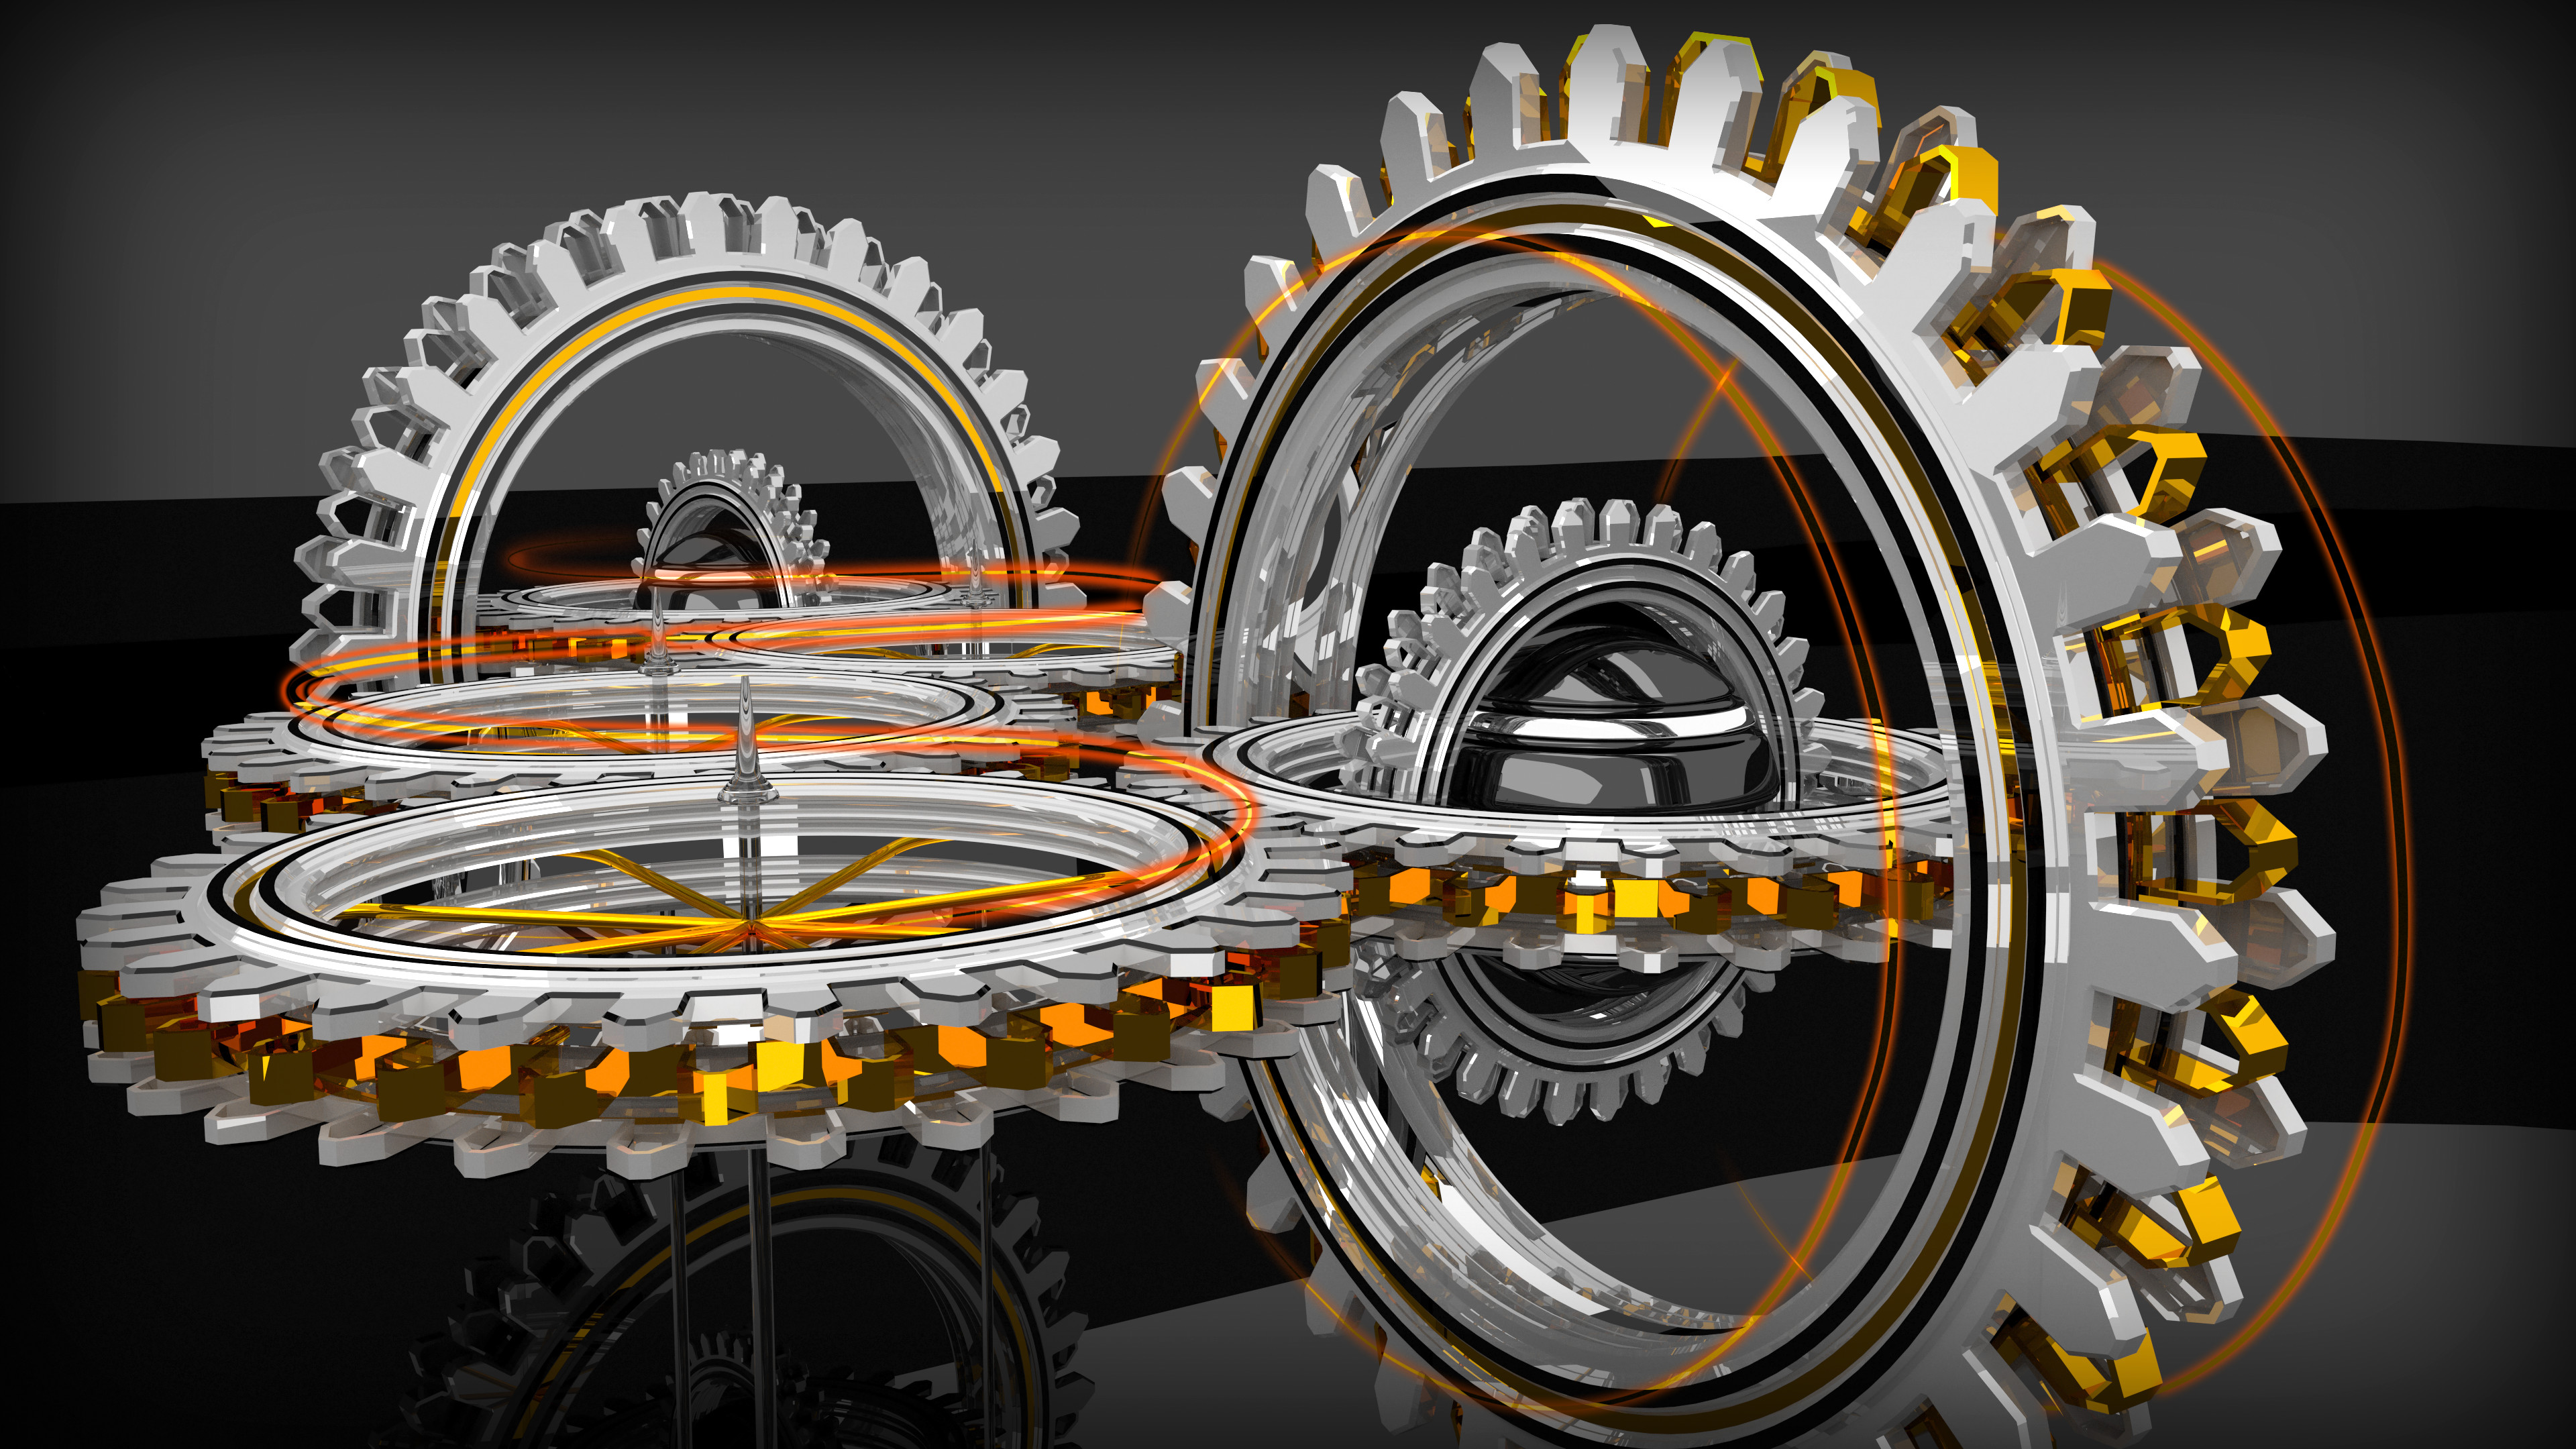 Mechanical engineering wallpapers 56 images - Hd wallpaper mechanical engineering ...